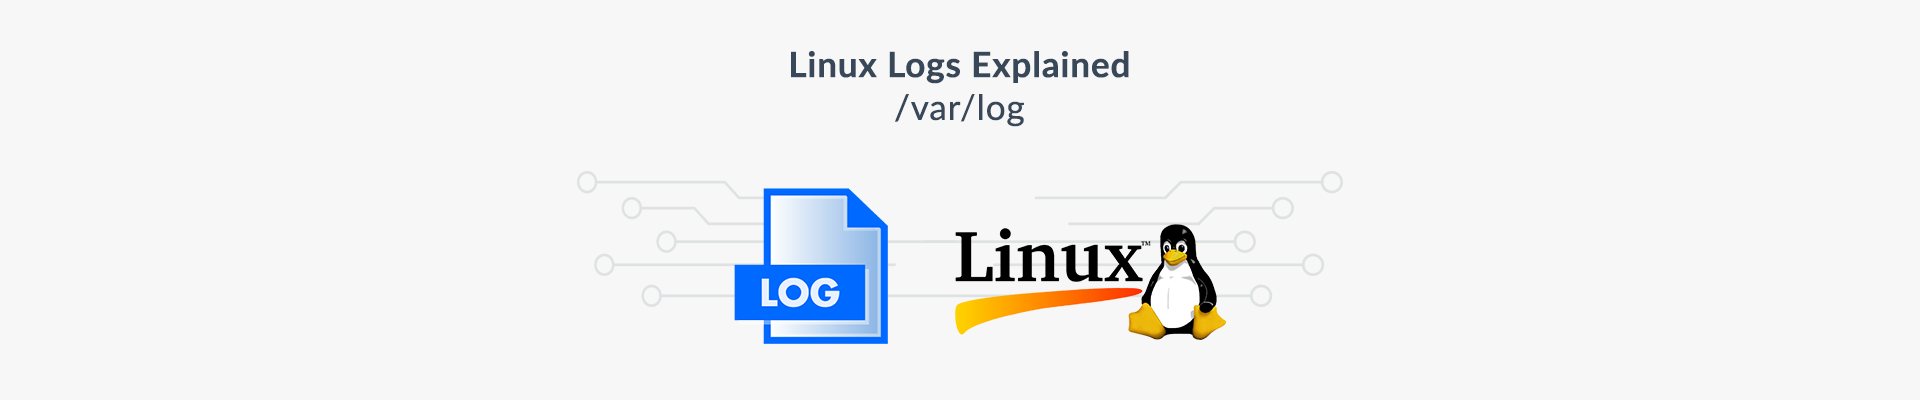 Linux Logs Explained - Plesk